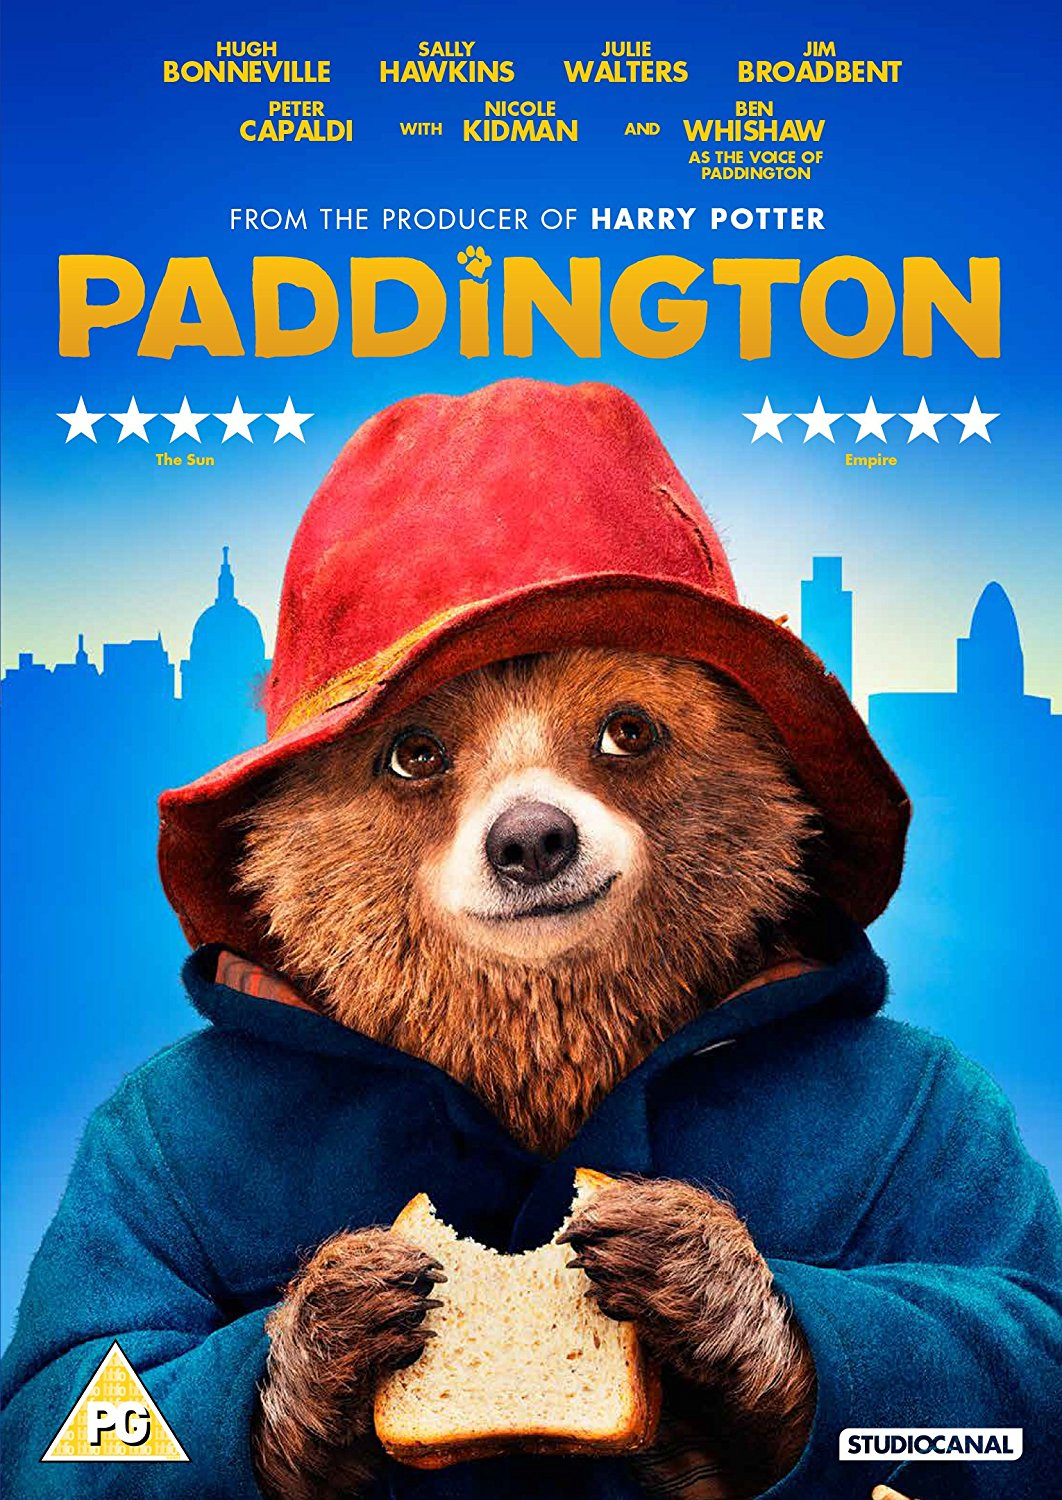 Paddington- Practical fx, Creature fx